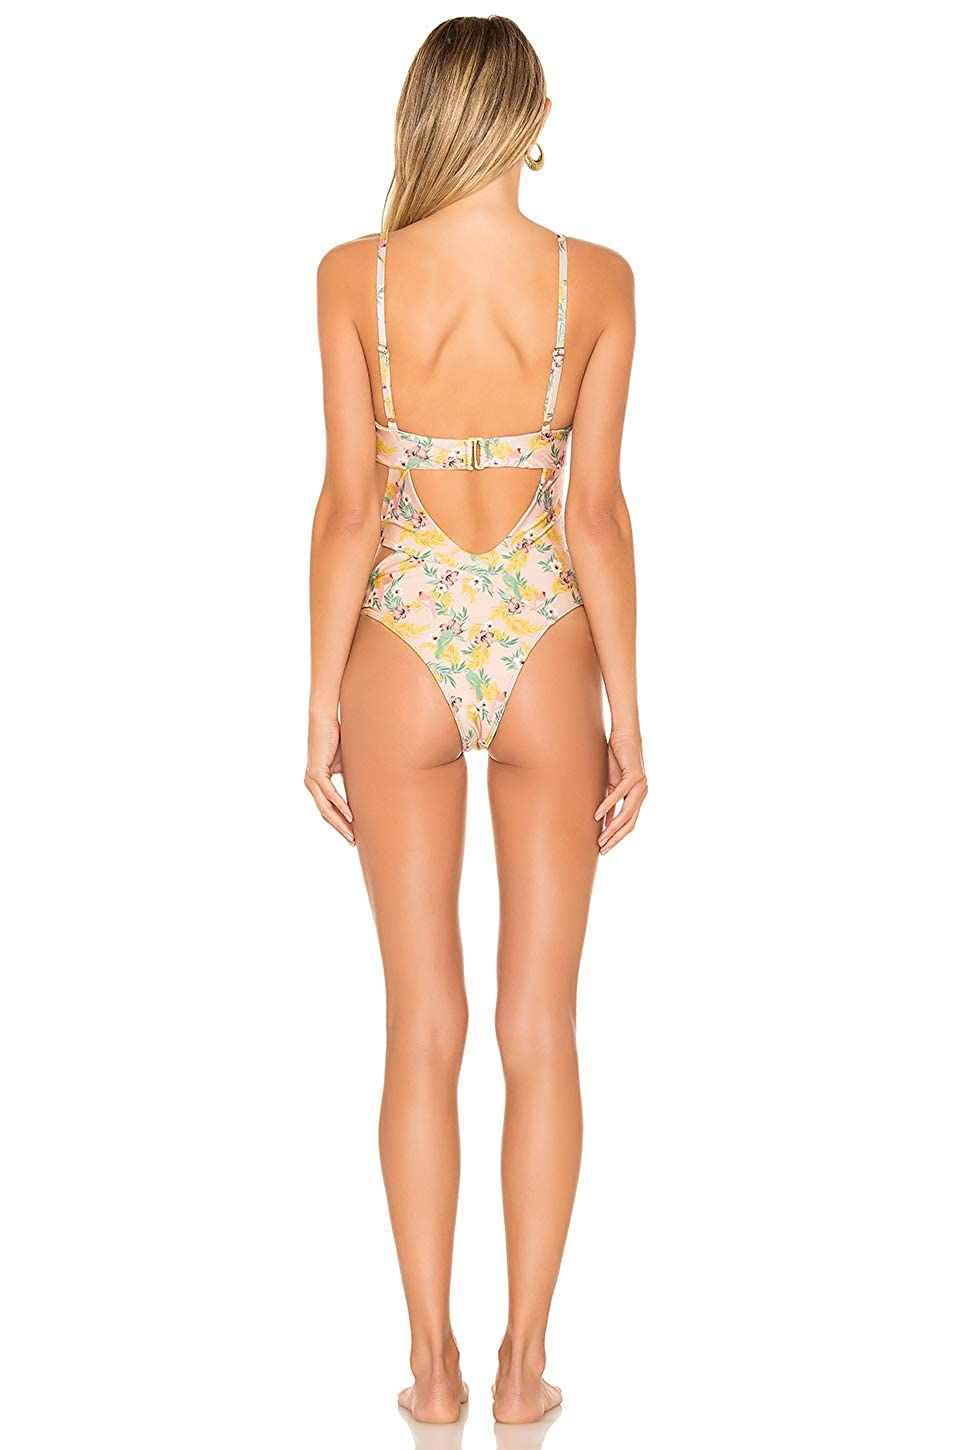 for Love and Lemons Antigua One Piece Swim Suit